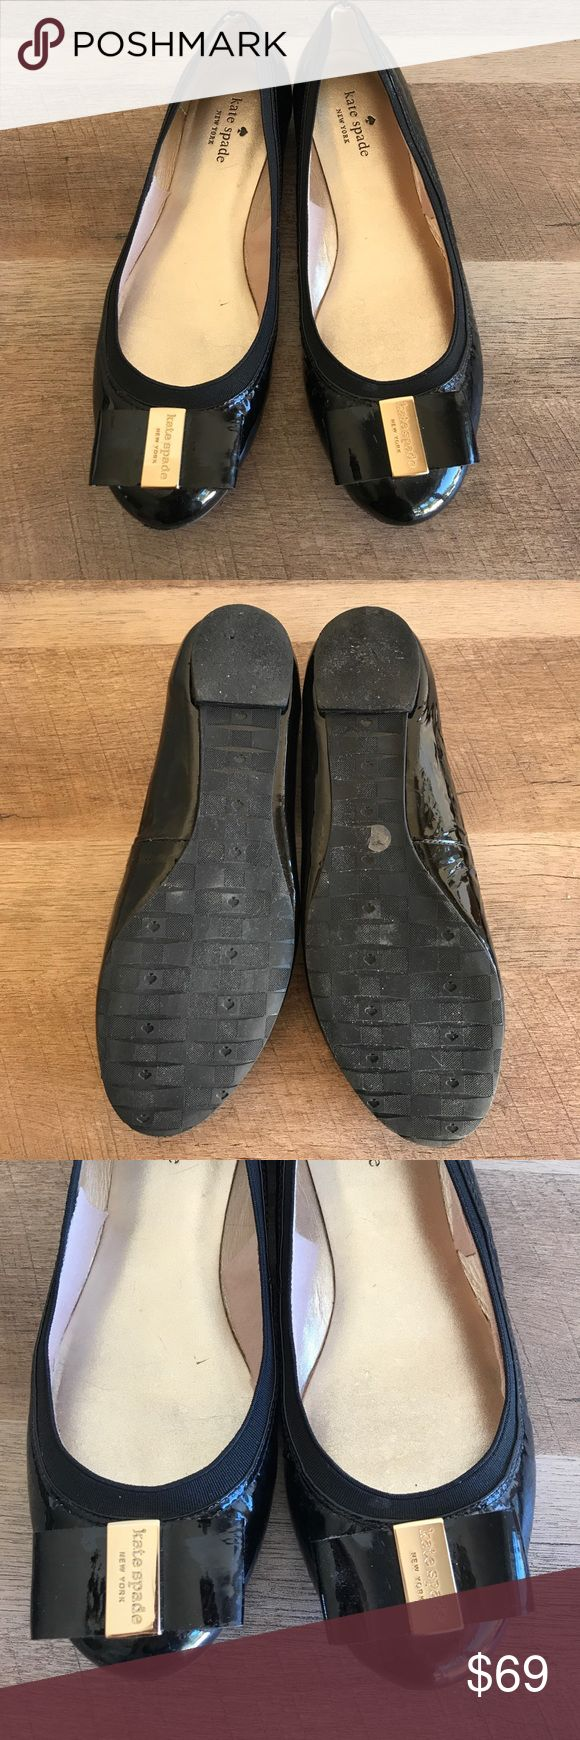 🆕 ♠️ kate spade Black Tock Flats ♠️kate spade black flats ♠️Size 8.5 ♠️Great used condition ♠️Very small imperfection pictured in last picture. You cannot see this when they are on. Please let me know if you have any questions! 😊🌺 kate spade Shoes Flats & Loafers